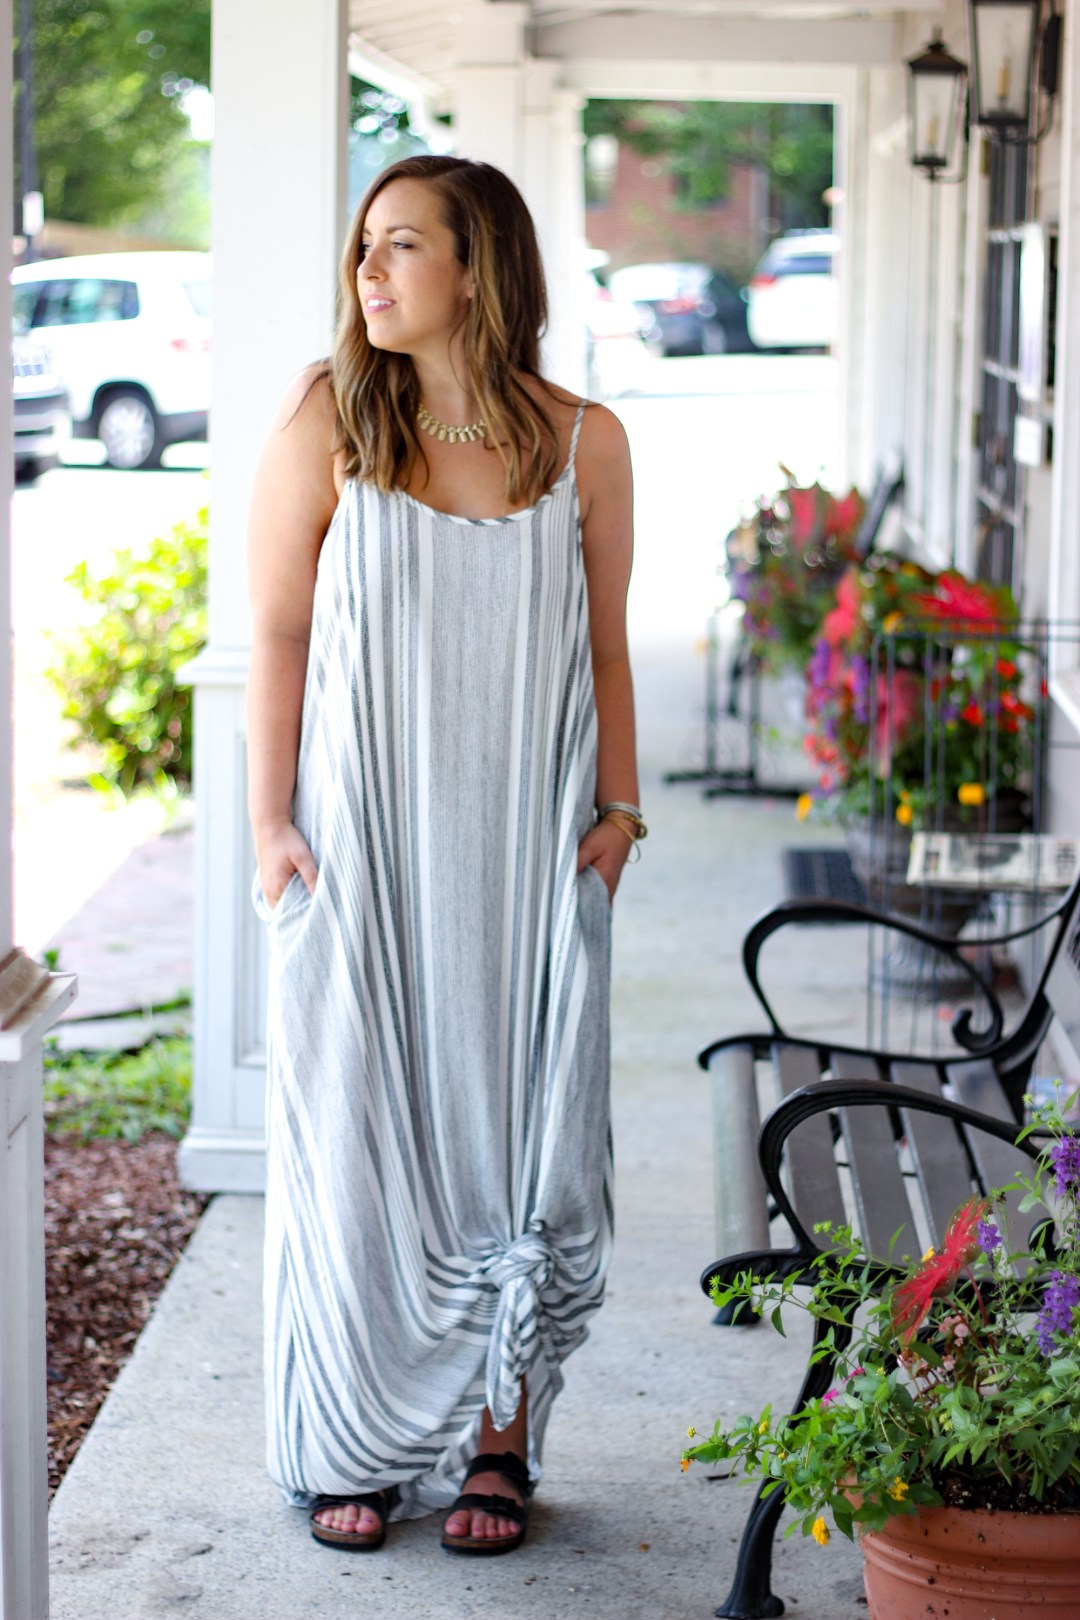 Knotted Maxi Dress | Just Peachy Blog